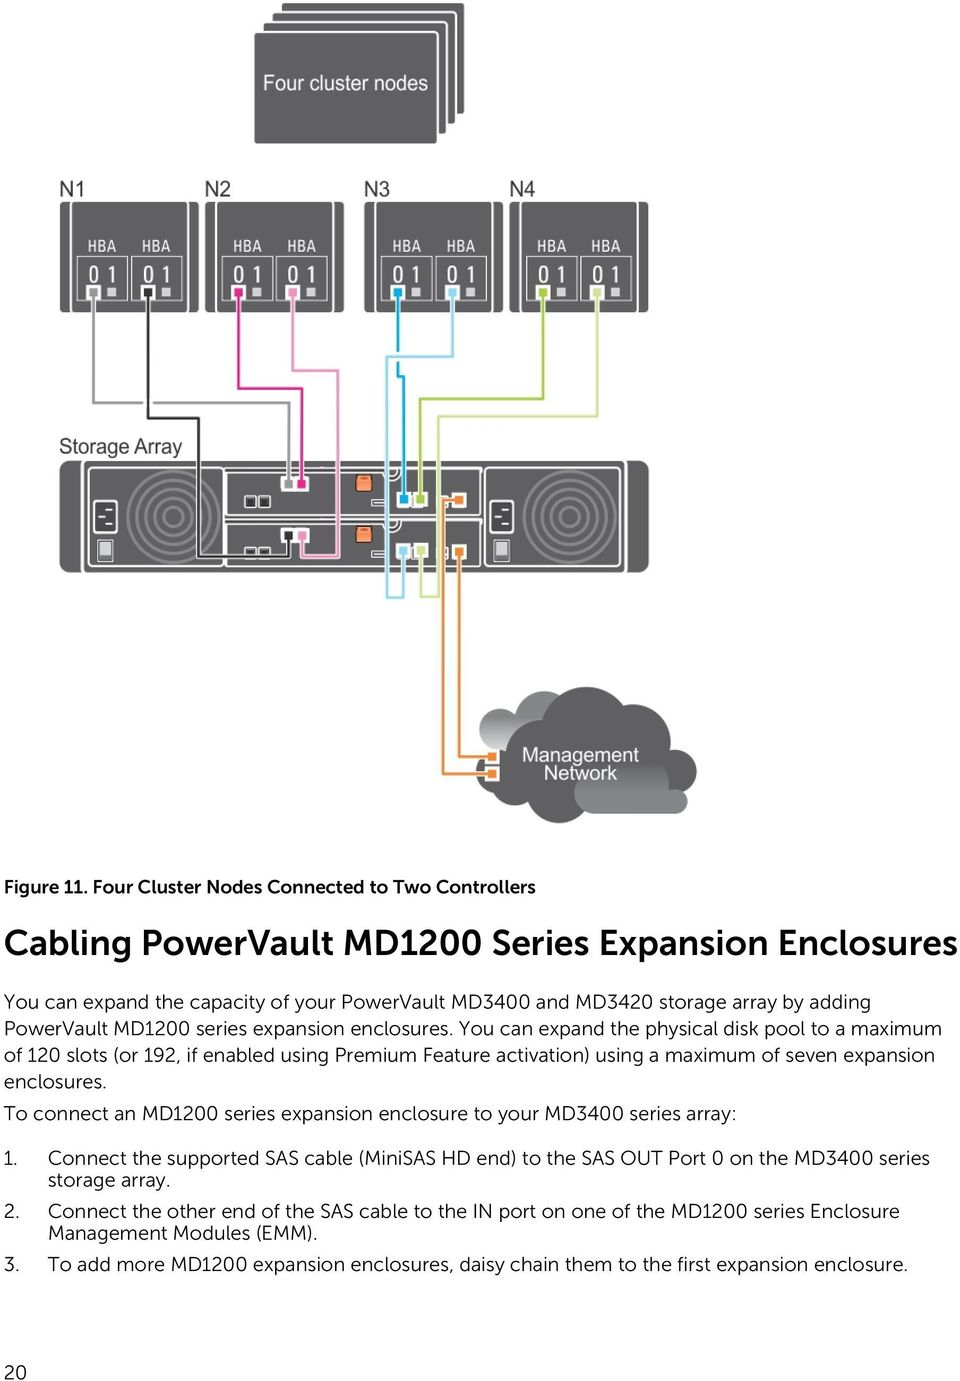 PowerVault MD1200 series expansion enclosures.